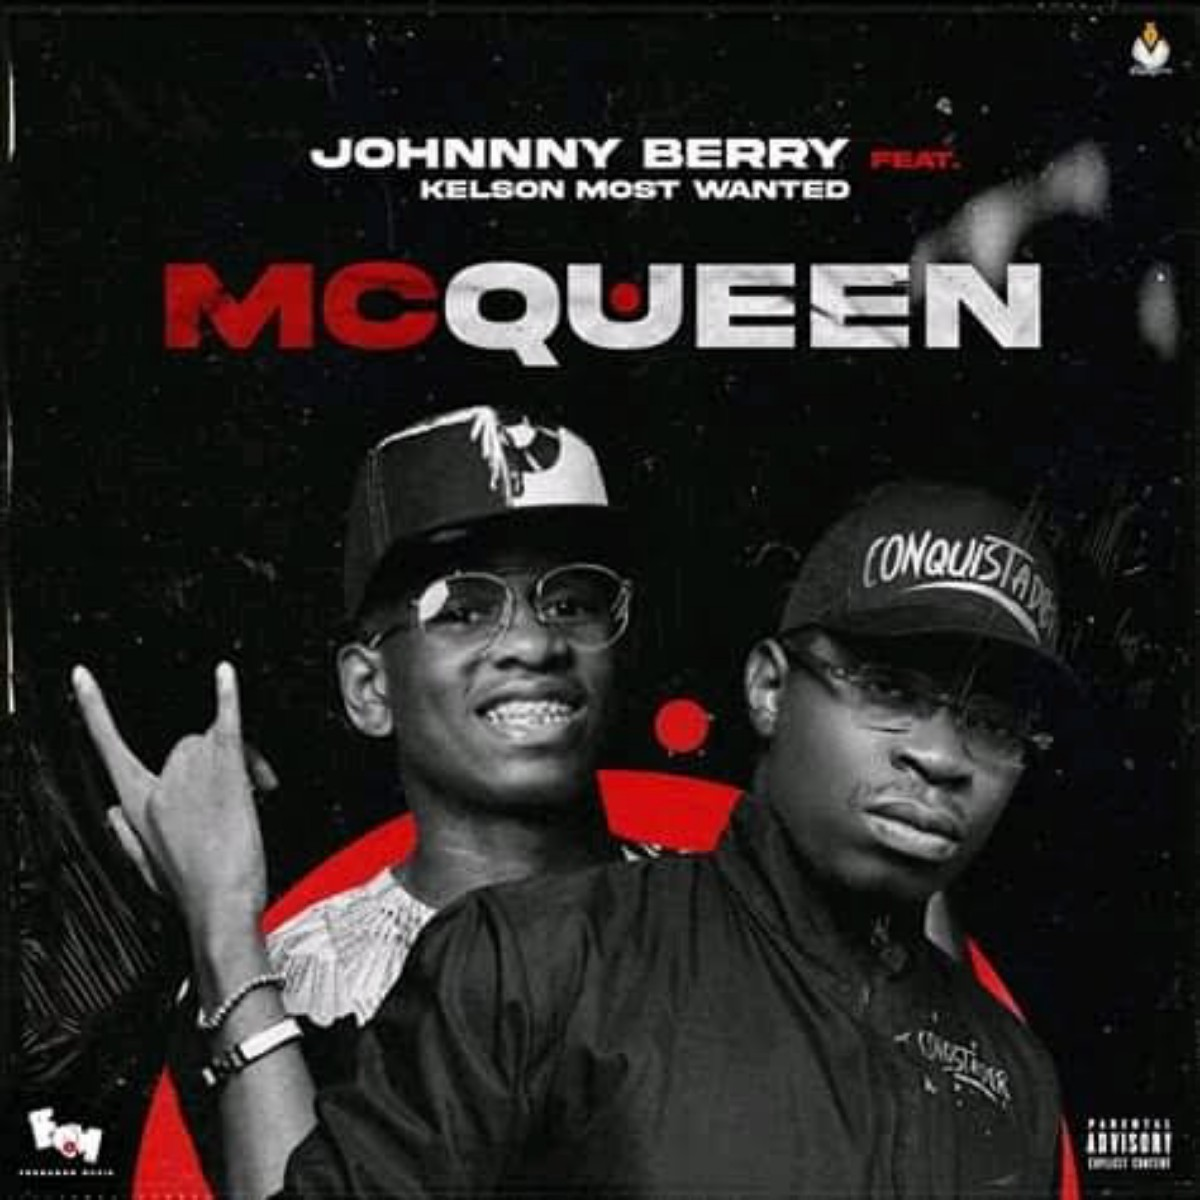 Johnny Berry - McQueen (feat. Kelson Most Wanted)